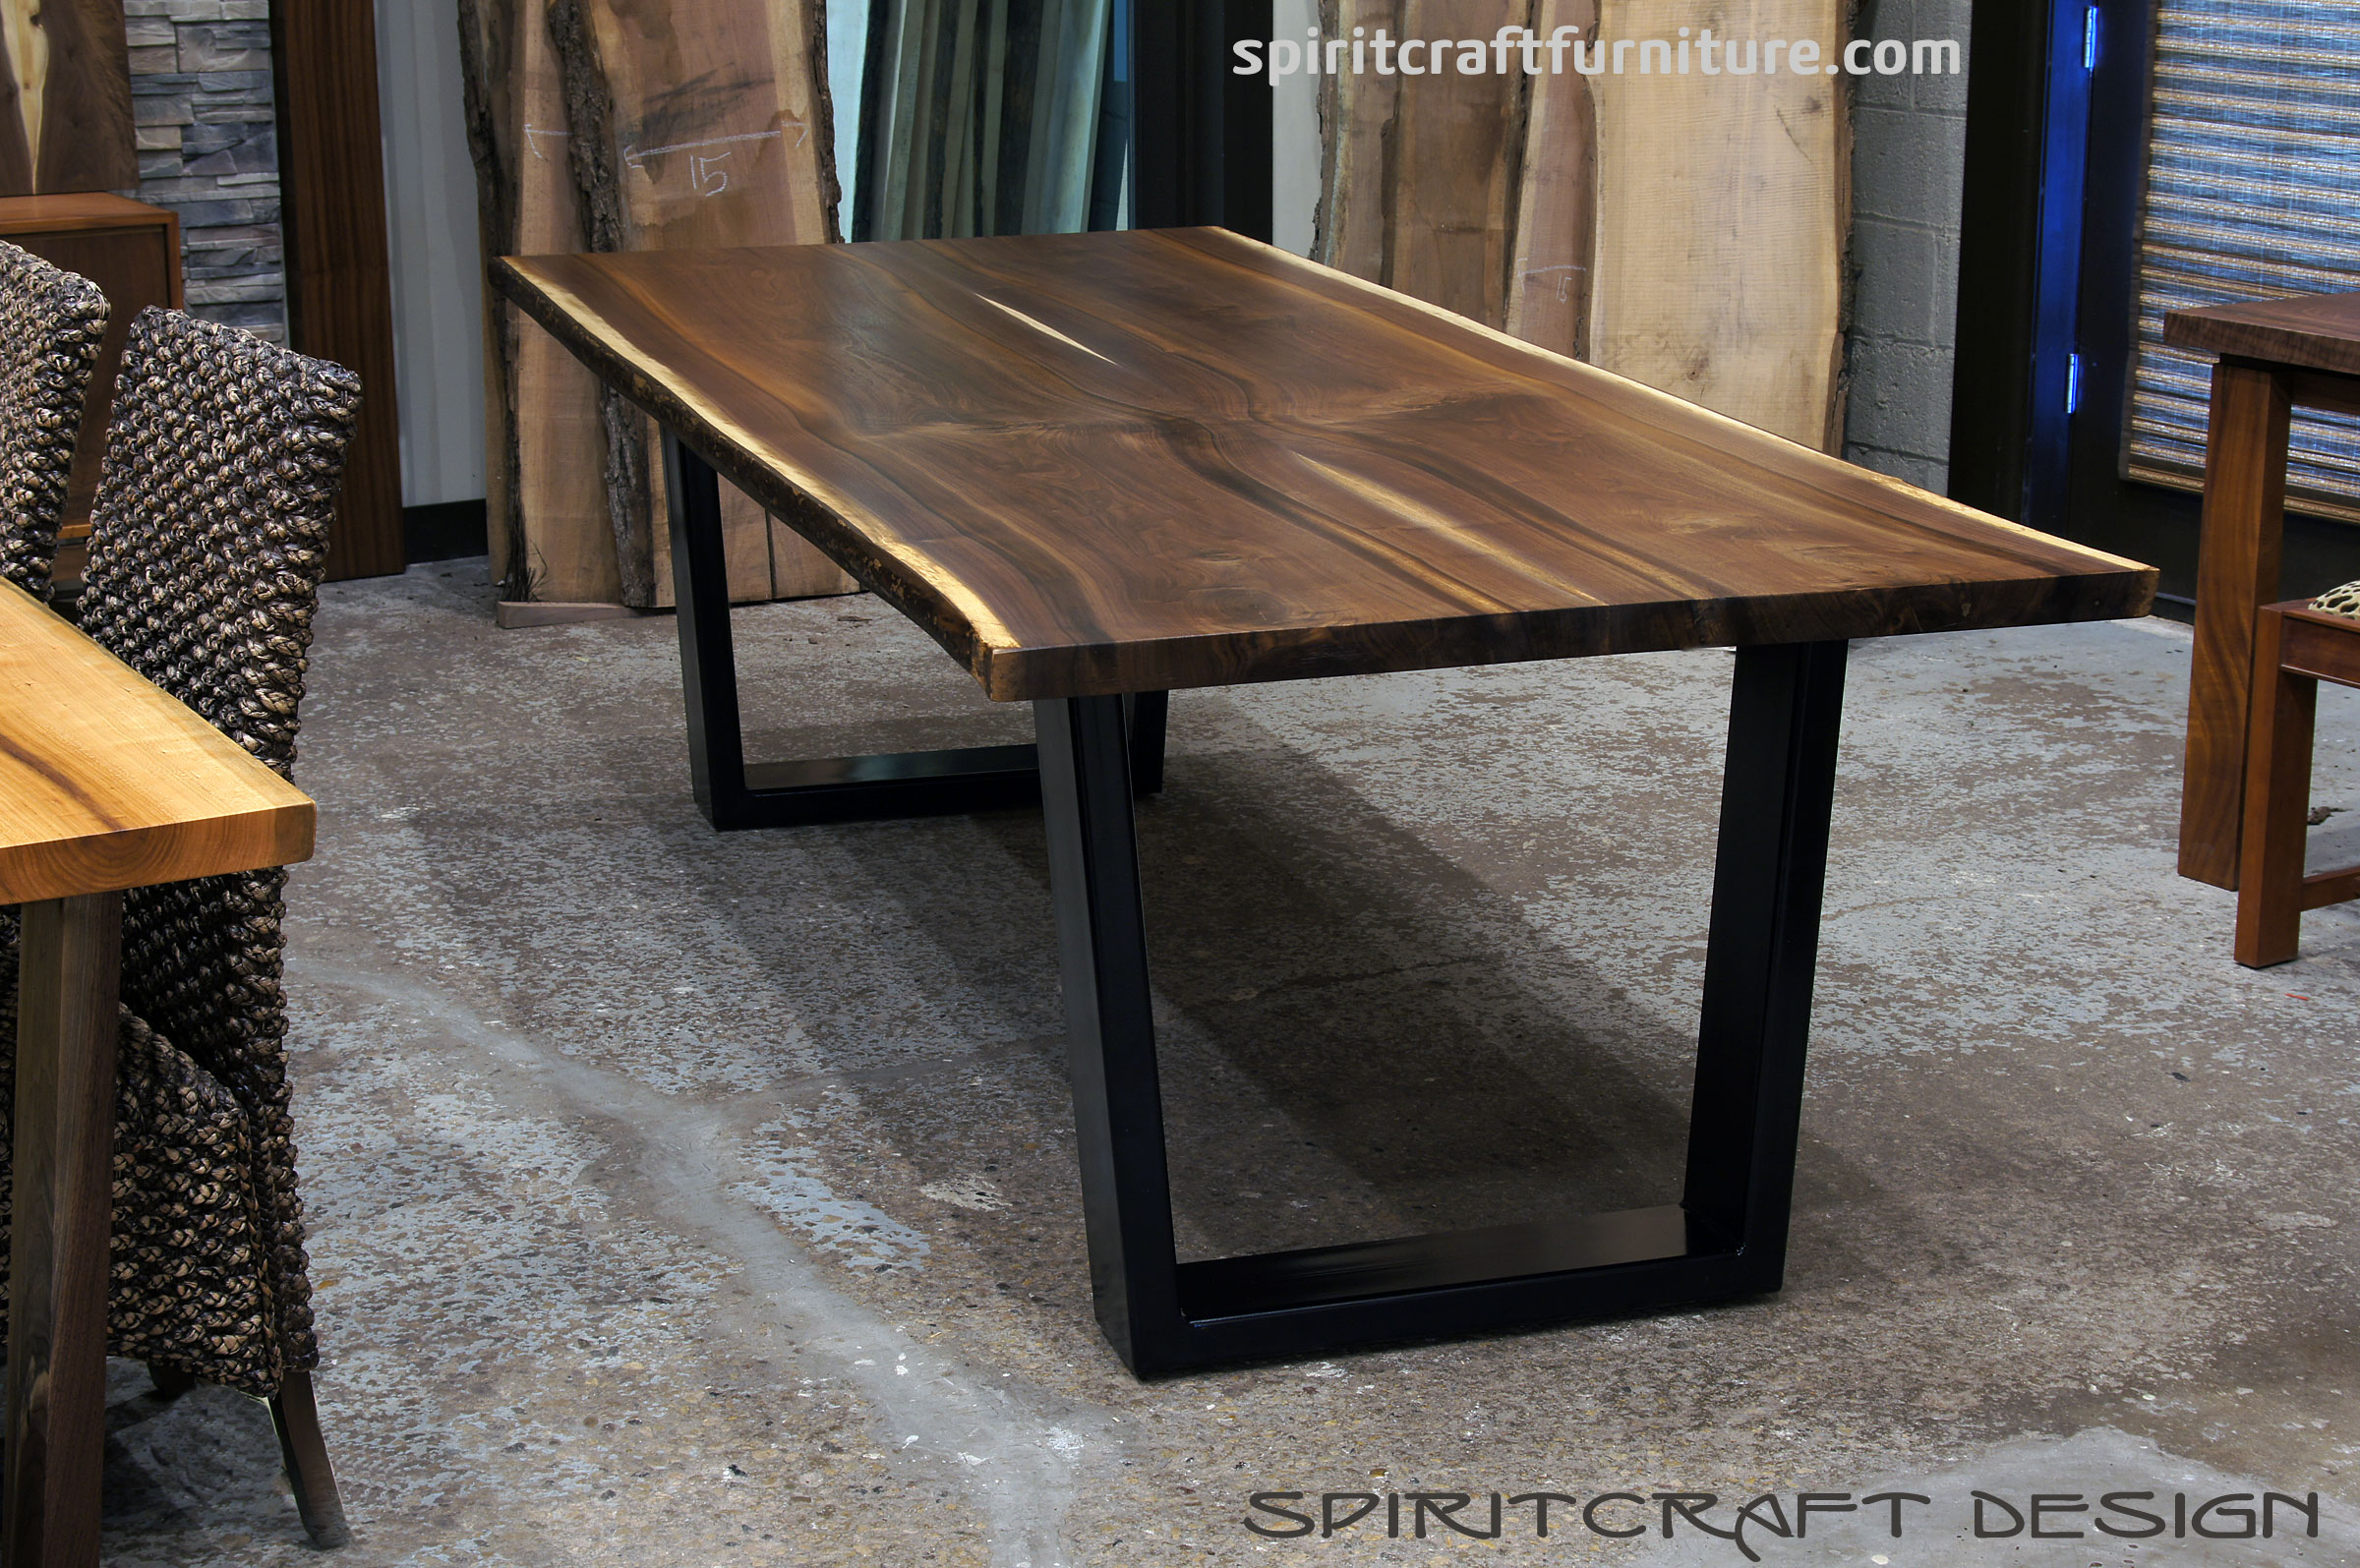 Black Walnut live edge slab dining table for Chicago area client from Great Spirit Furniture Company, East Dundee, IL.